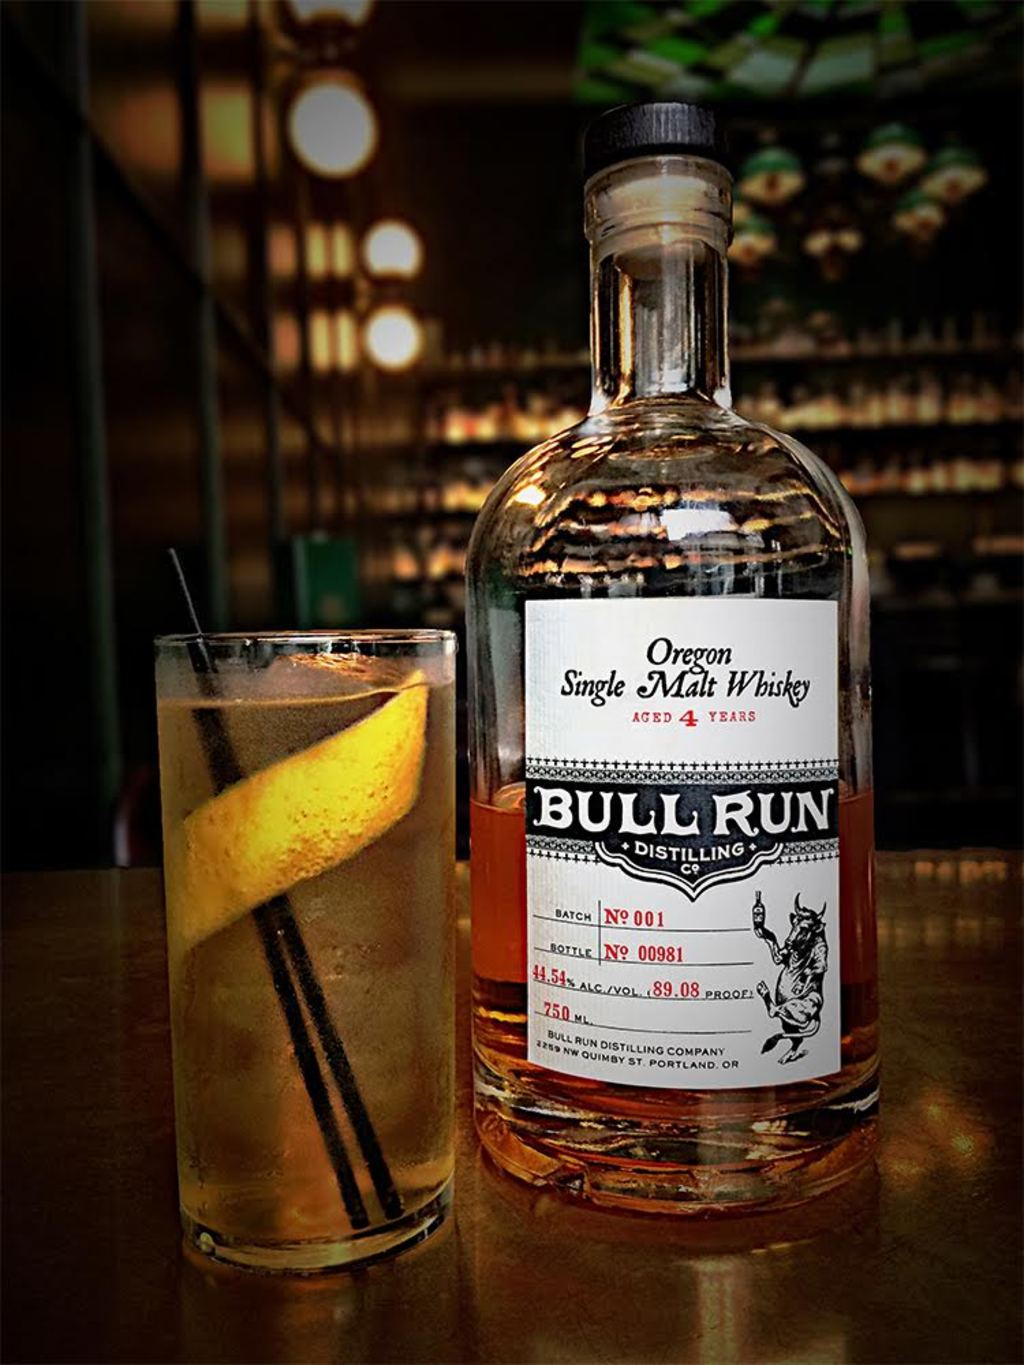 bull run single malt, montenegro amaro, hickory syrup, rosemary, co2